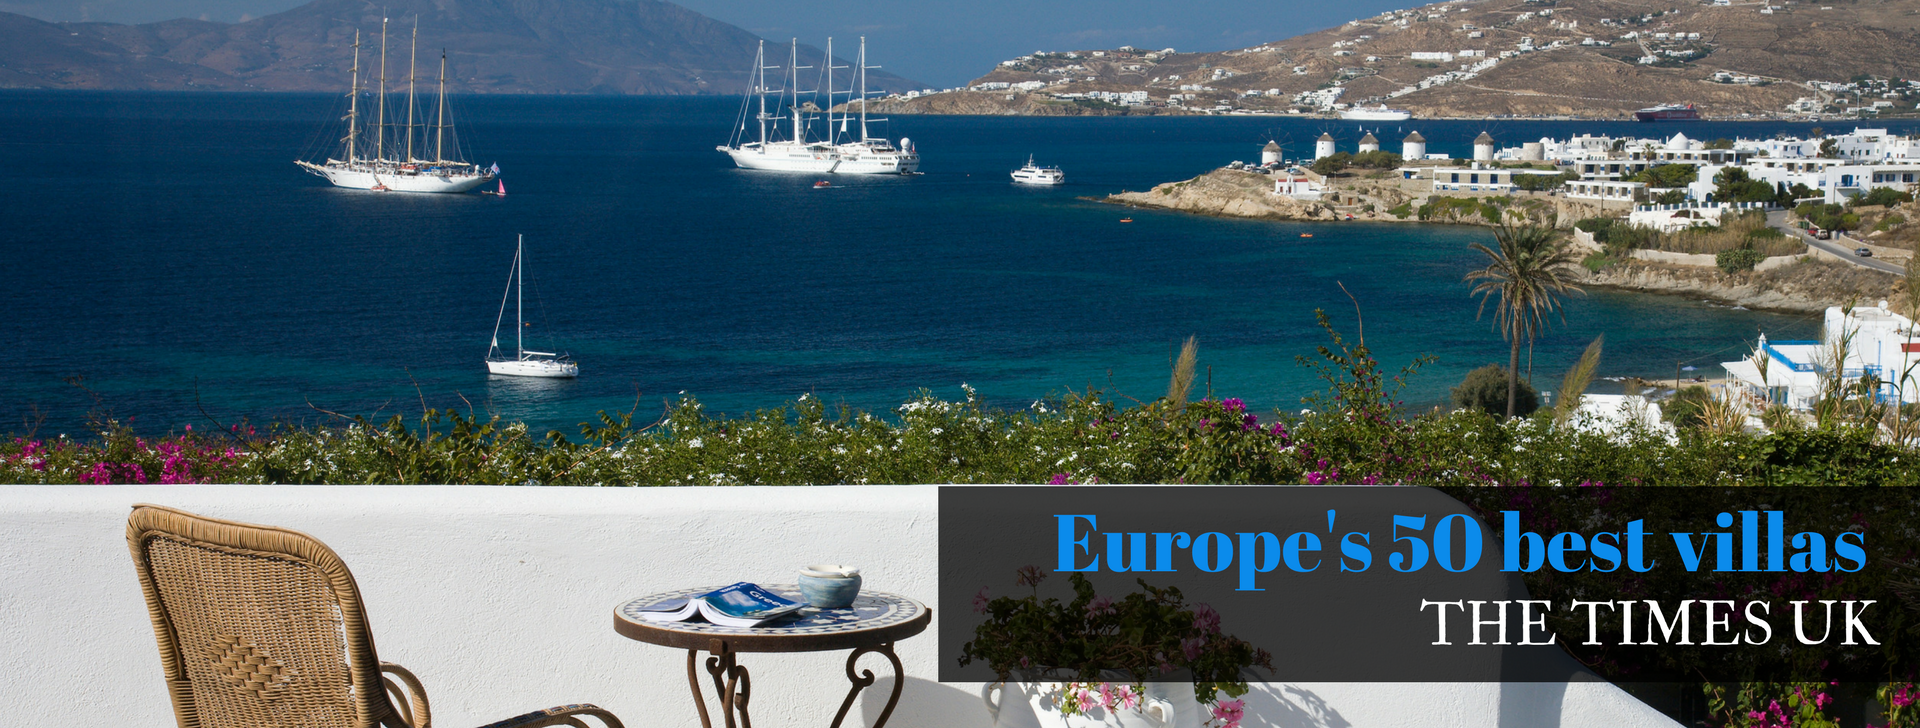 Europes-50-best-villas